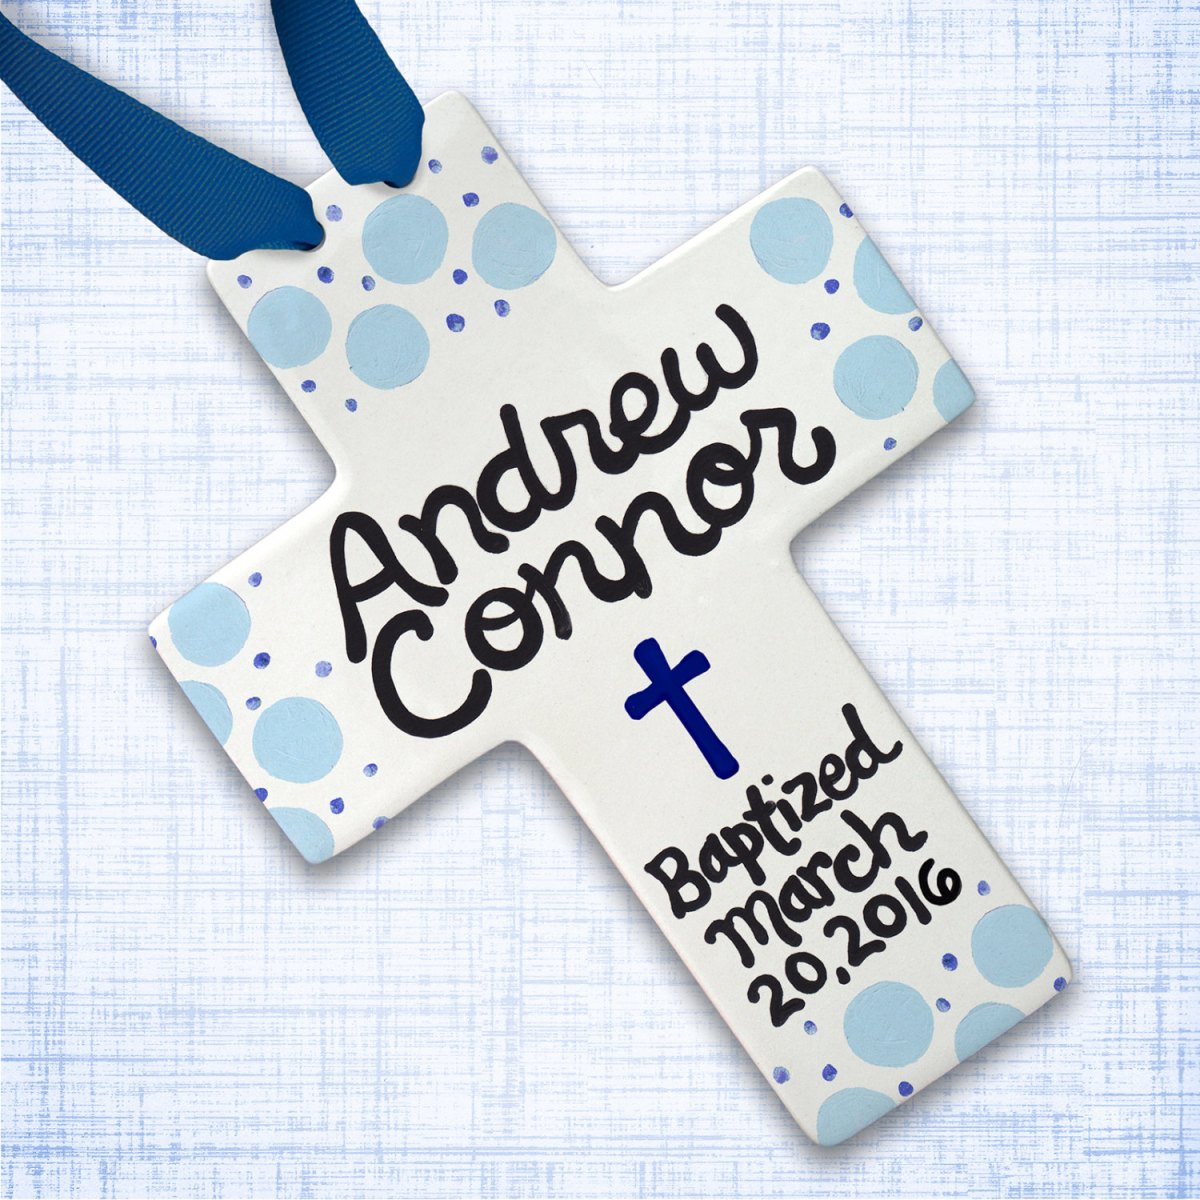 Christian Baby Gifts Personalized  Personalized Baby Crosses – The Christian Gifts Place Blog